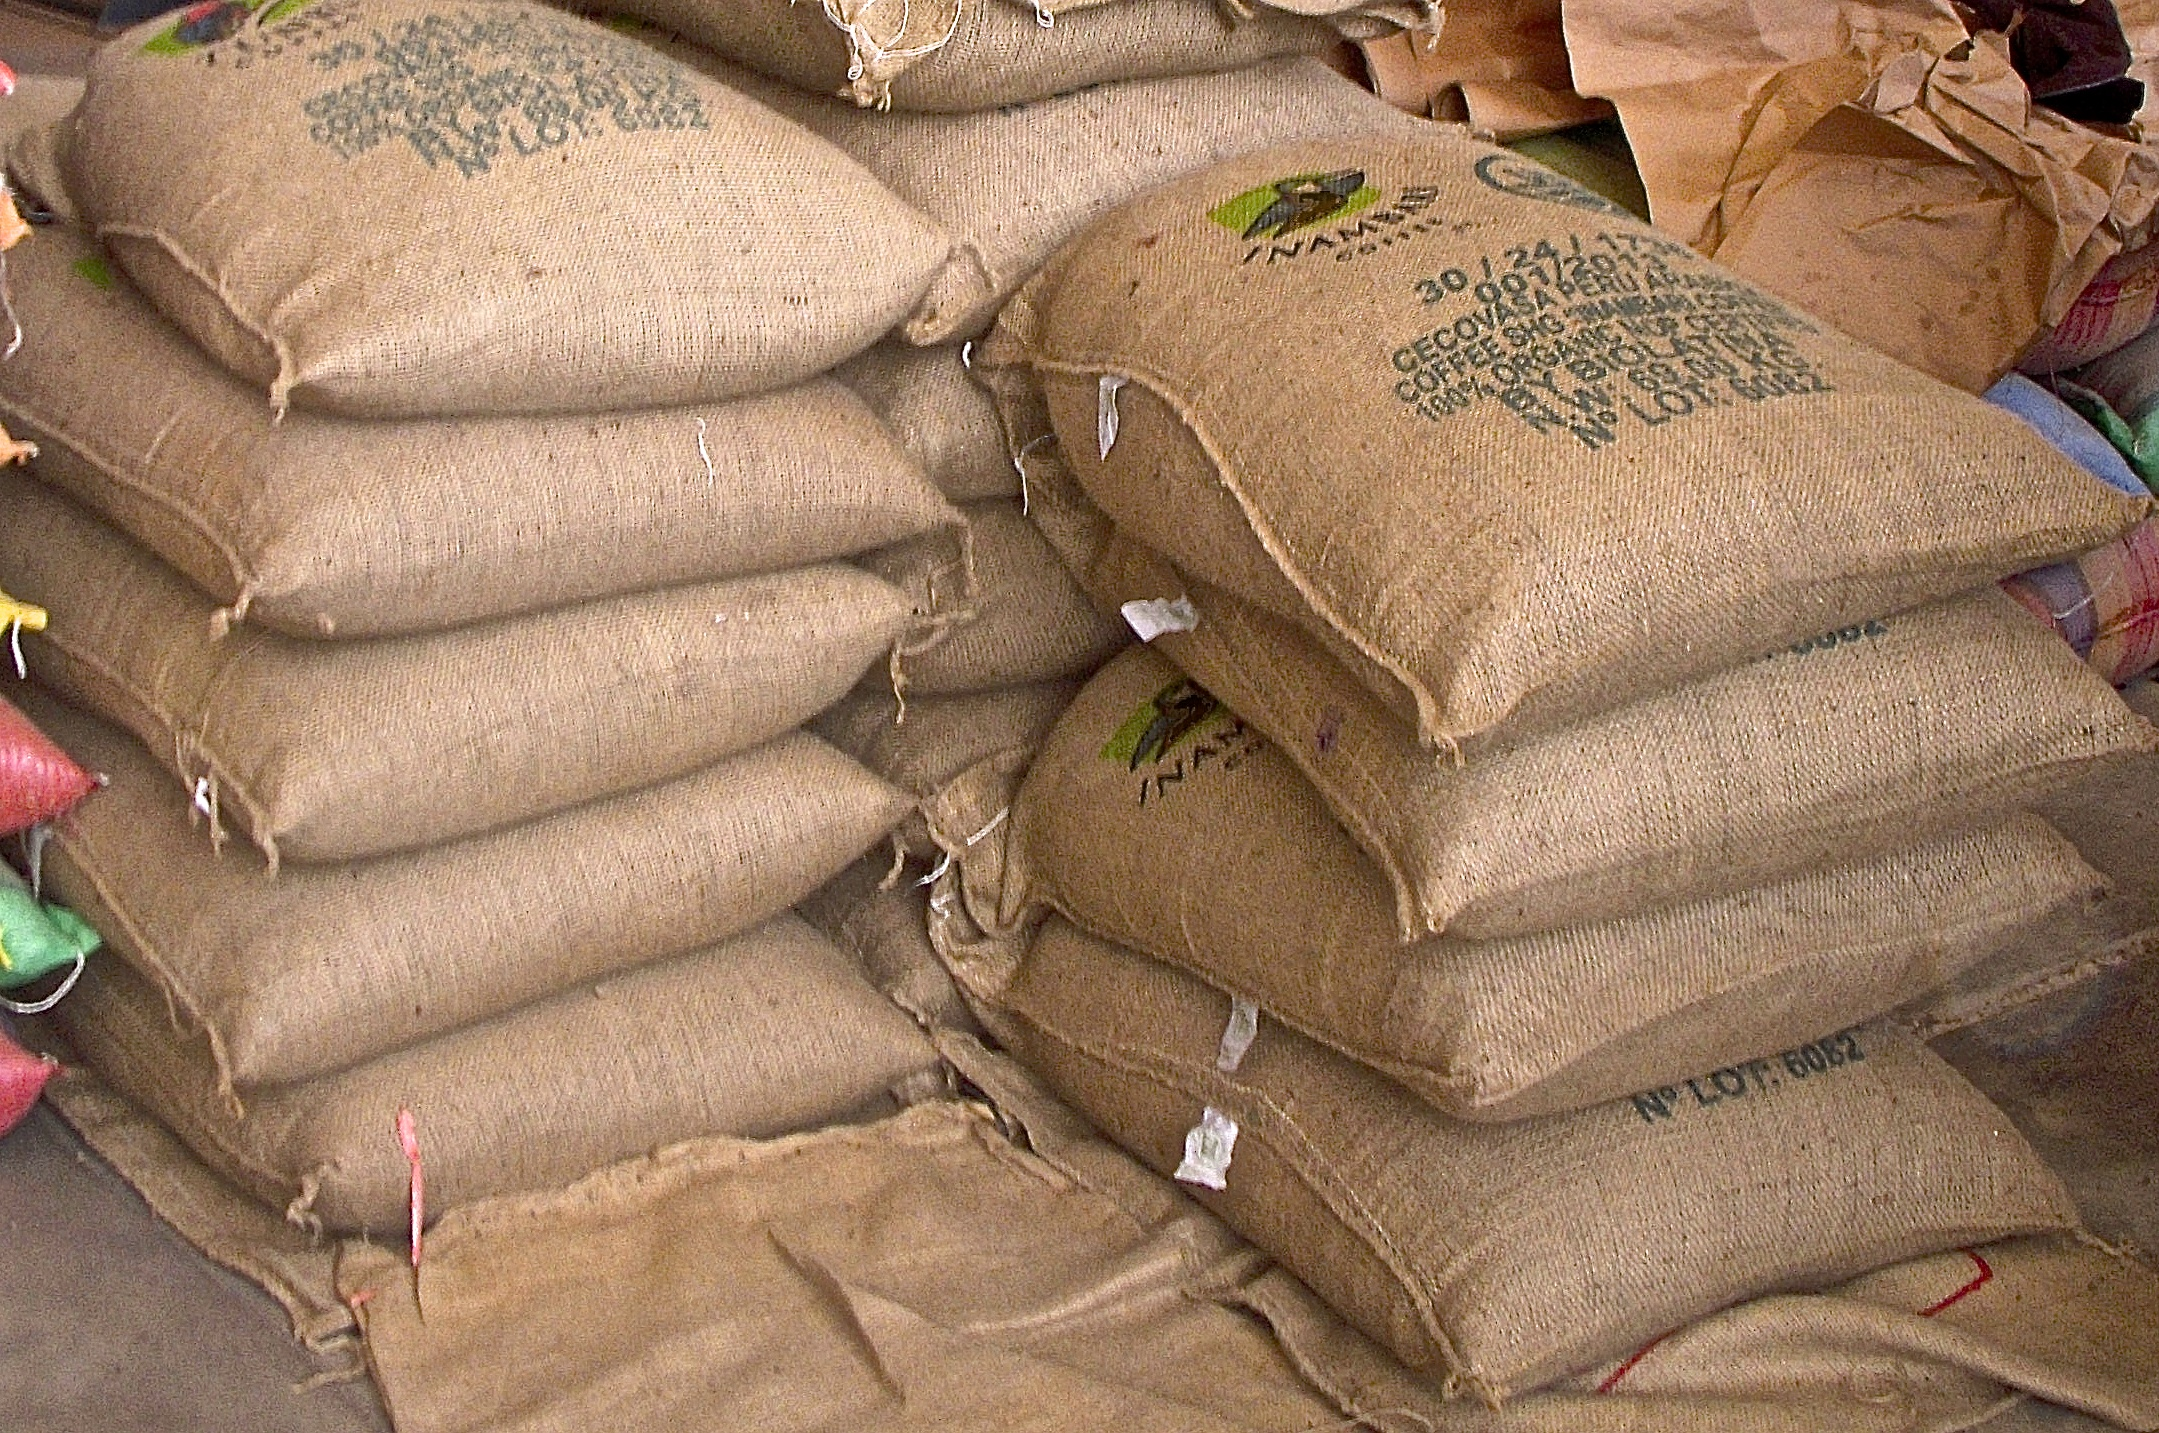 16 huge bags (151 pounds each!) of coffee in a Lima warehouse.